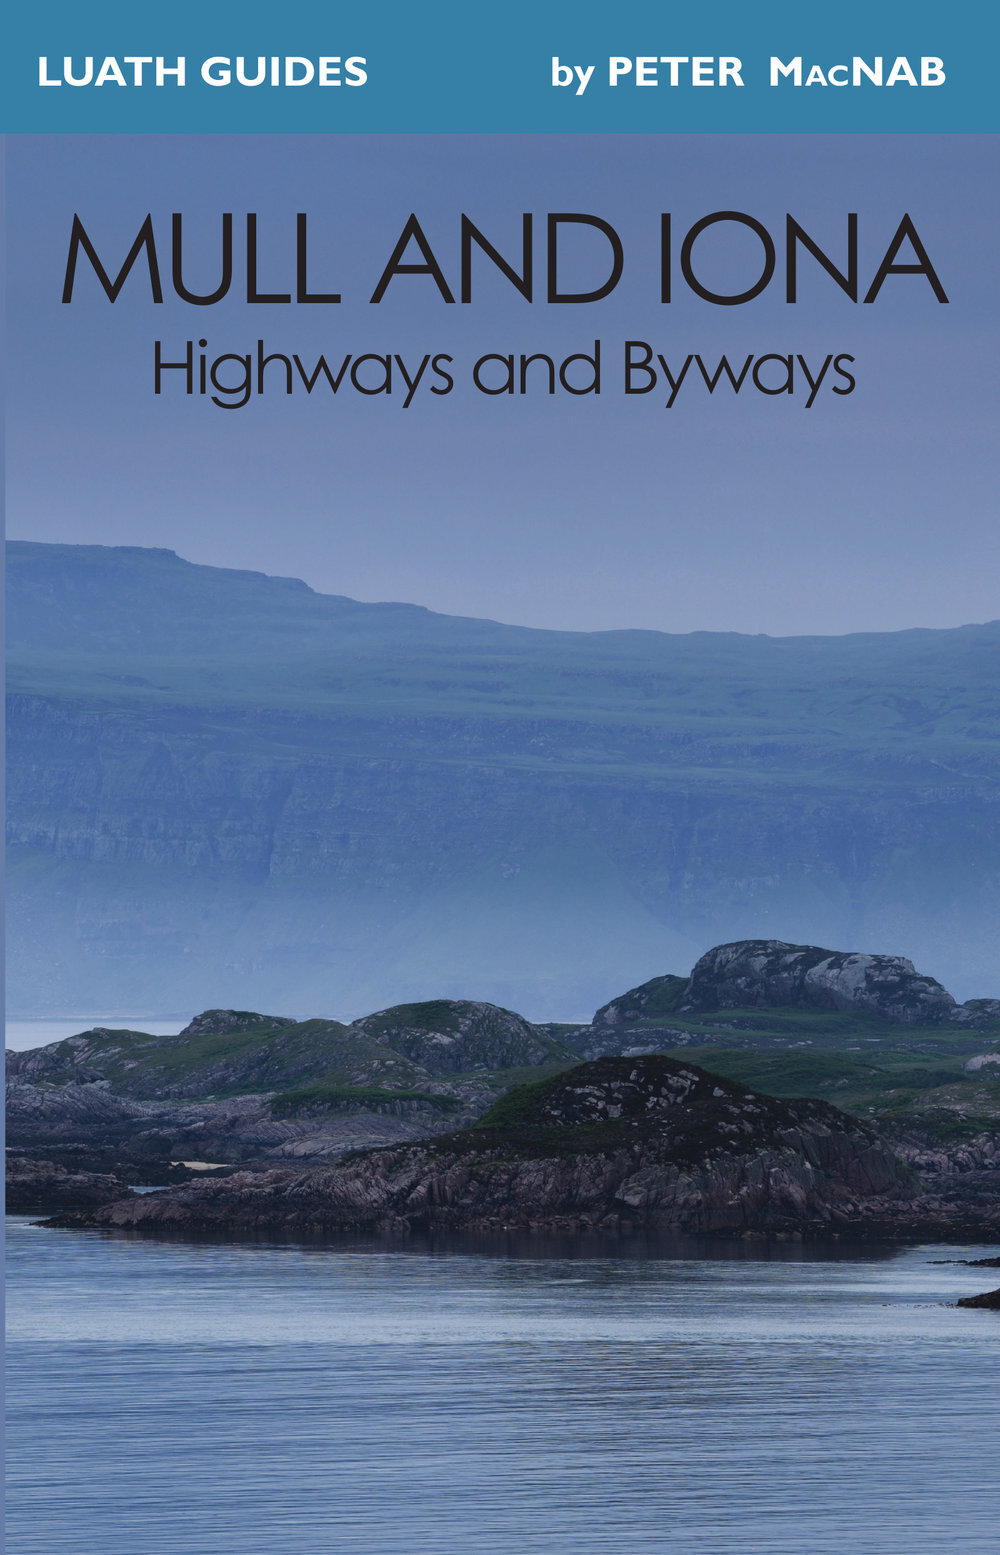 Mull+and+Iona Second Edition Luath Press.jpg